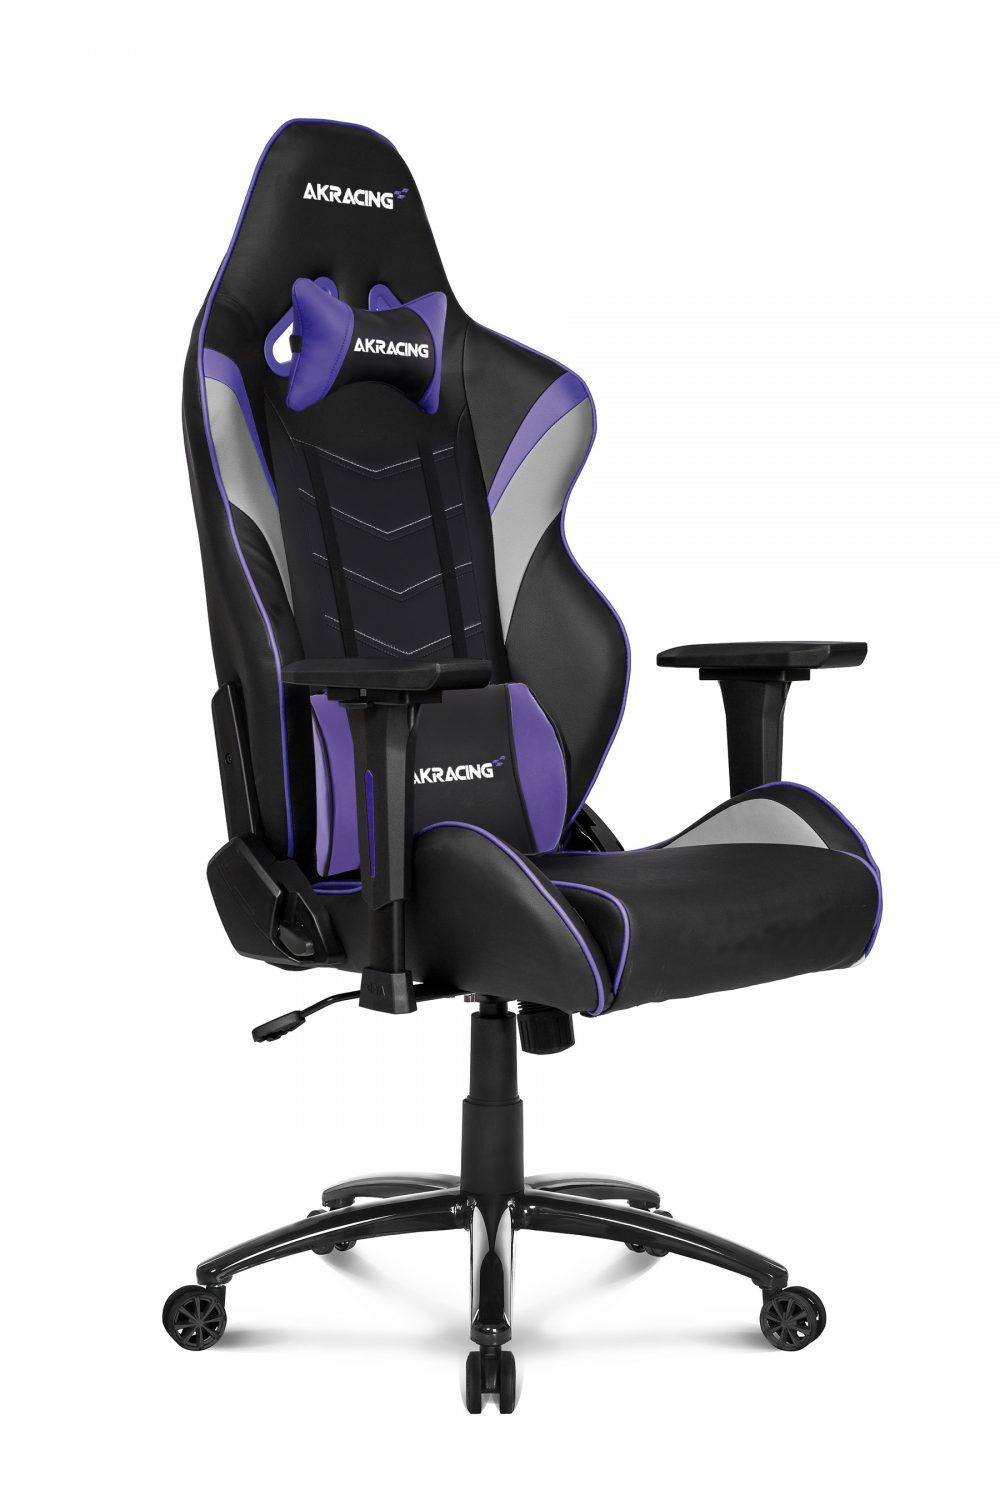 Akracing Lx Indigo Purple Gaming Chair Lx Gaming Chair Levels Up